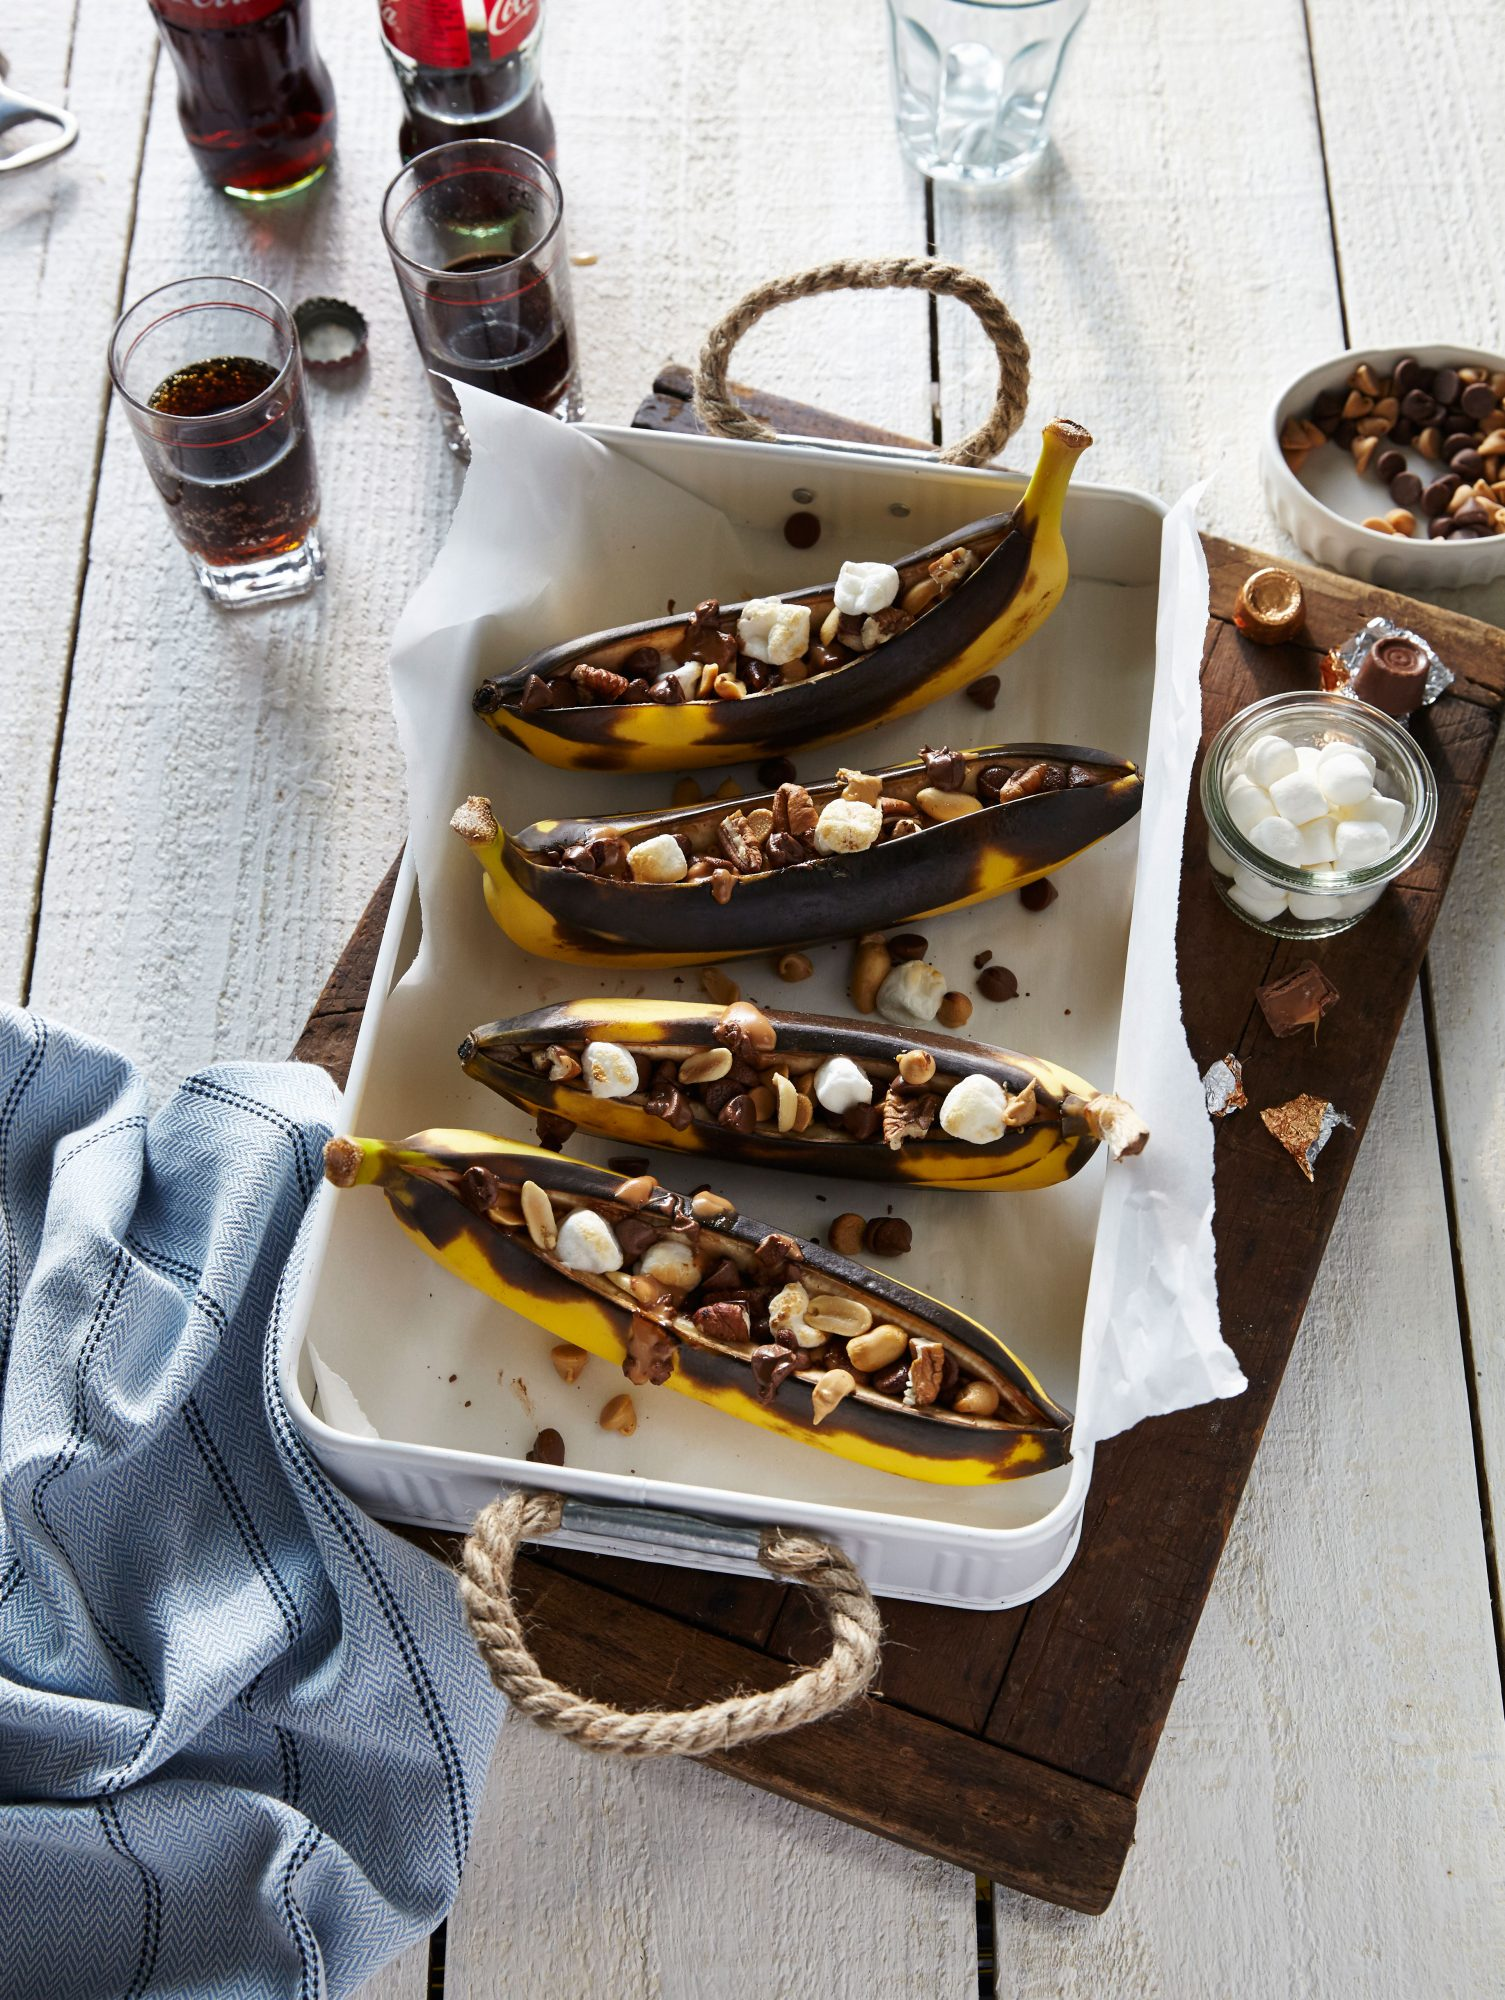 Grilled Stuffed Bananas